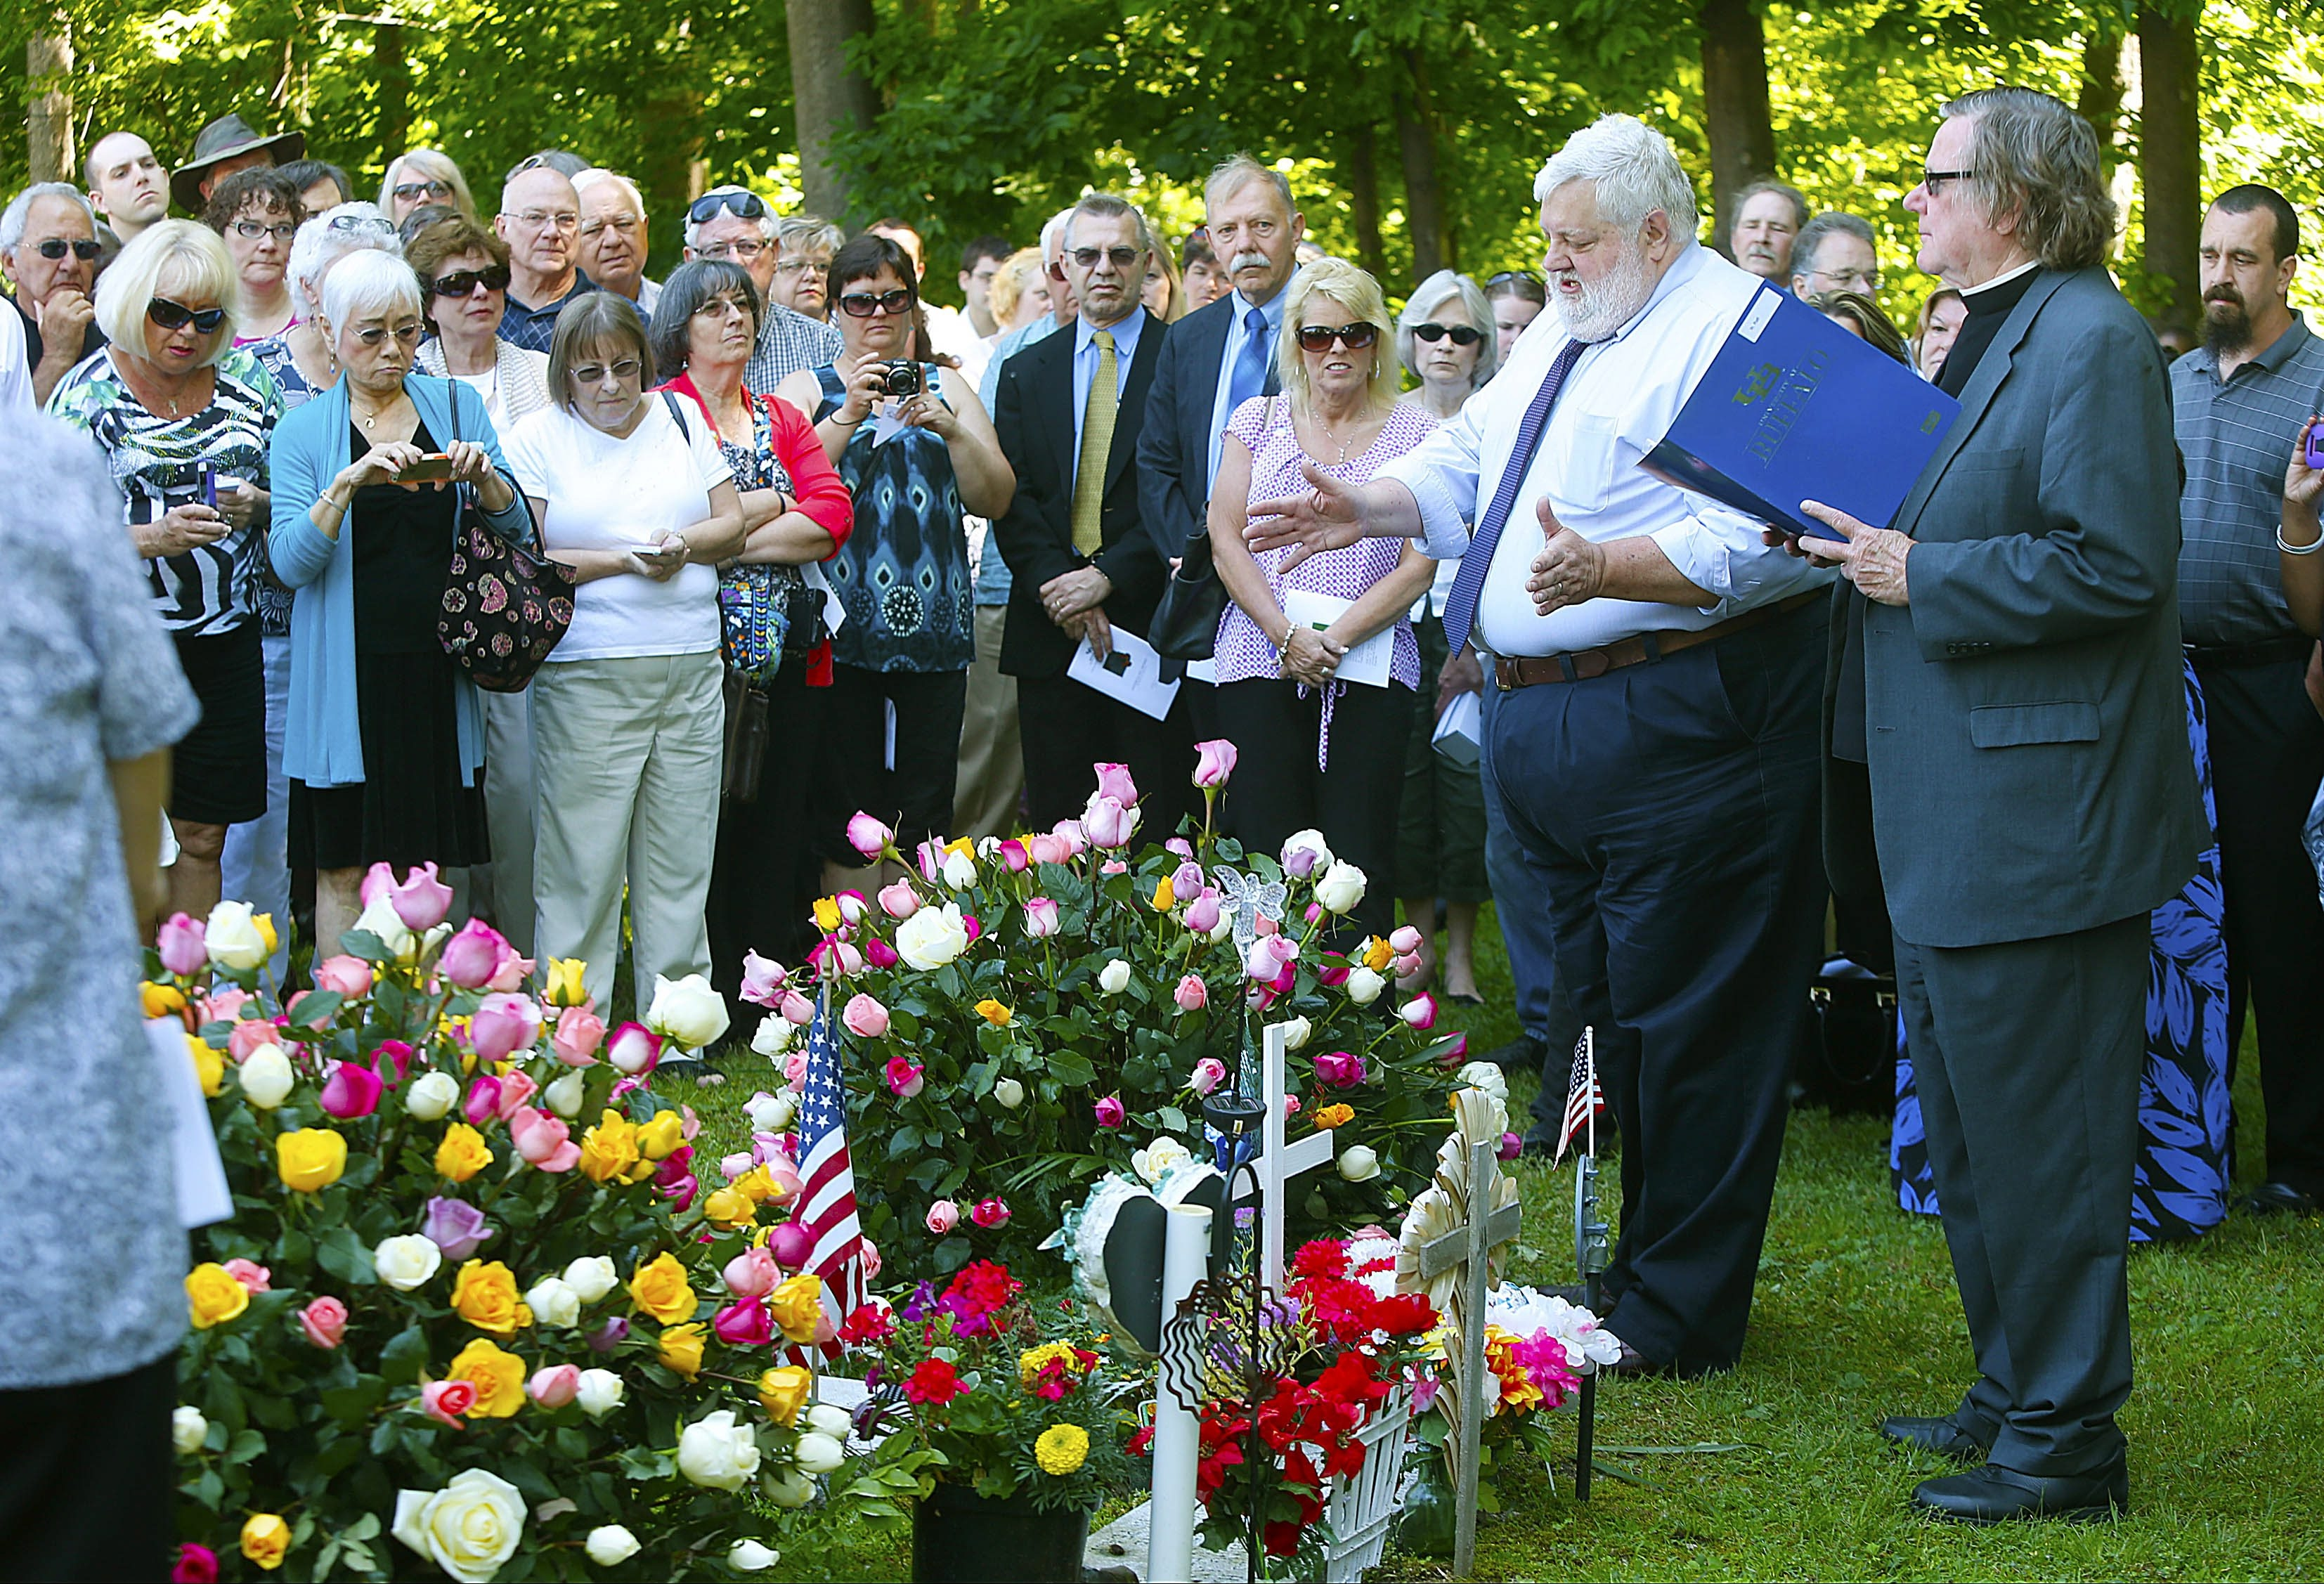 Monsignor Patrick Kelcher, right, and Raymond Dannenhoffer, second from right, director of the UB Anatomical Gift program, deliver a closing prayer. Family members during a memorial service honoring those that donated anatomical gifts to UB medical school.  This was at the Skinnerville Cemetery at UB north onThursday, June 19, 2014.  (Robert Kirkham/Buffalo News)